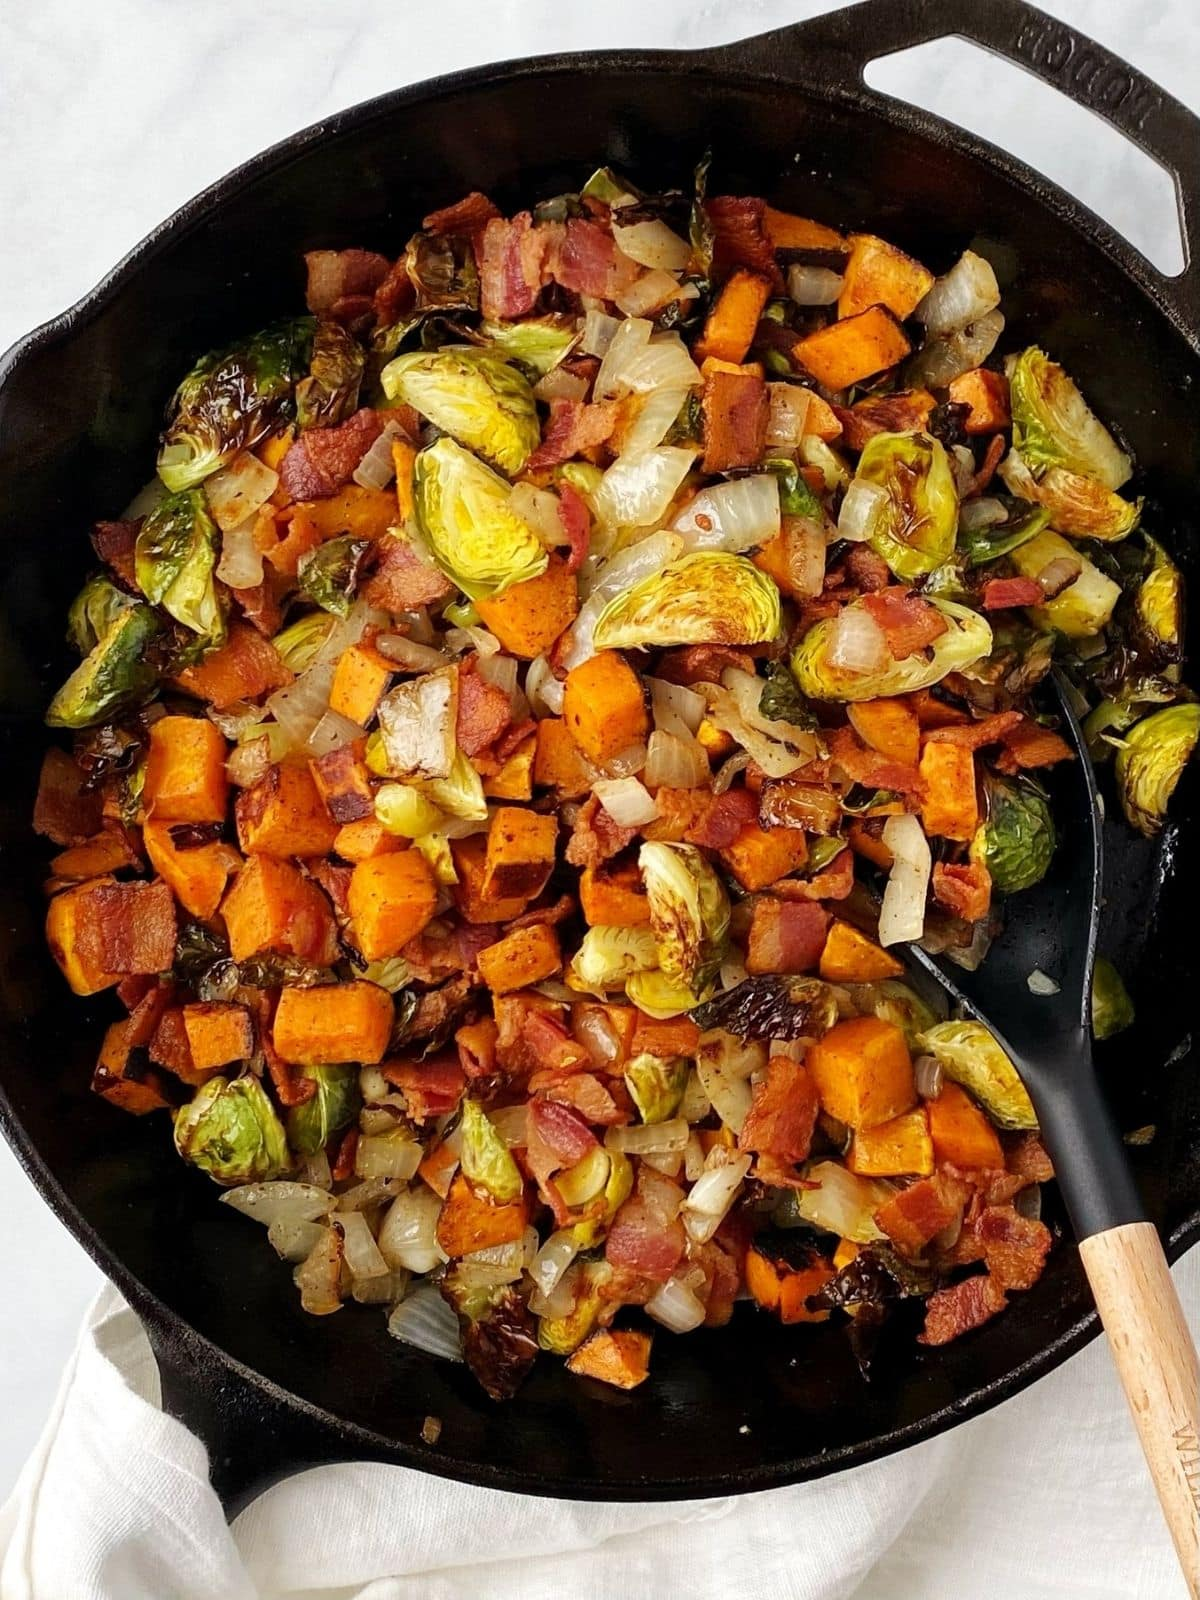 close up of veggies and bacon in the cast-iron skillet